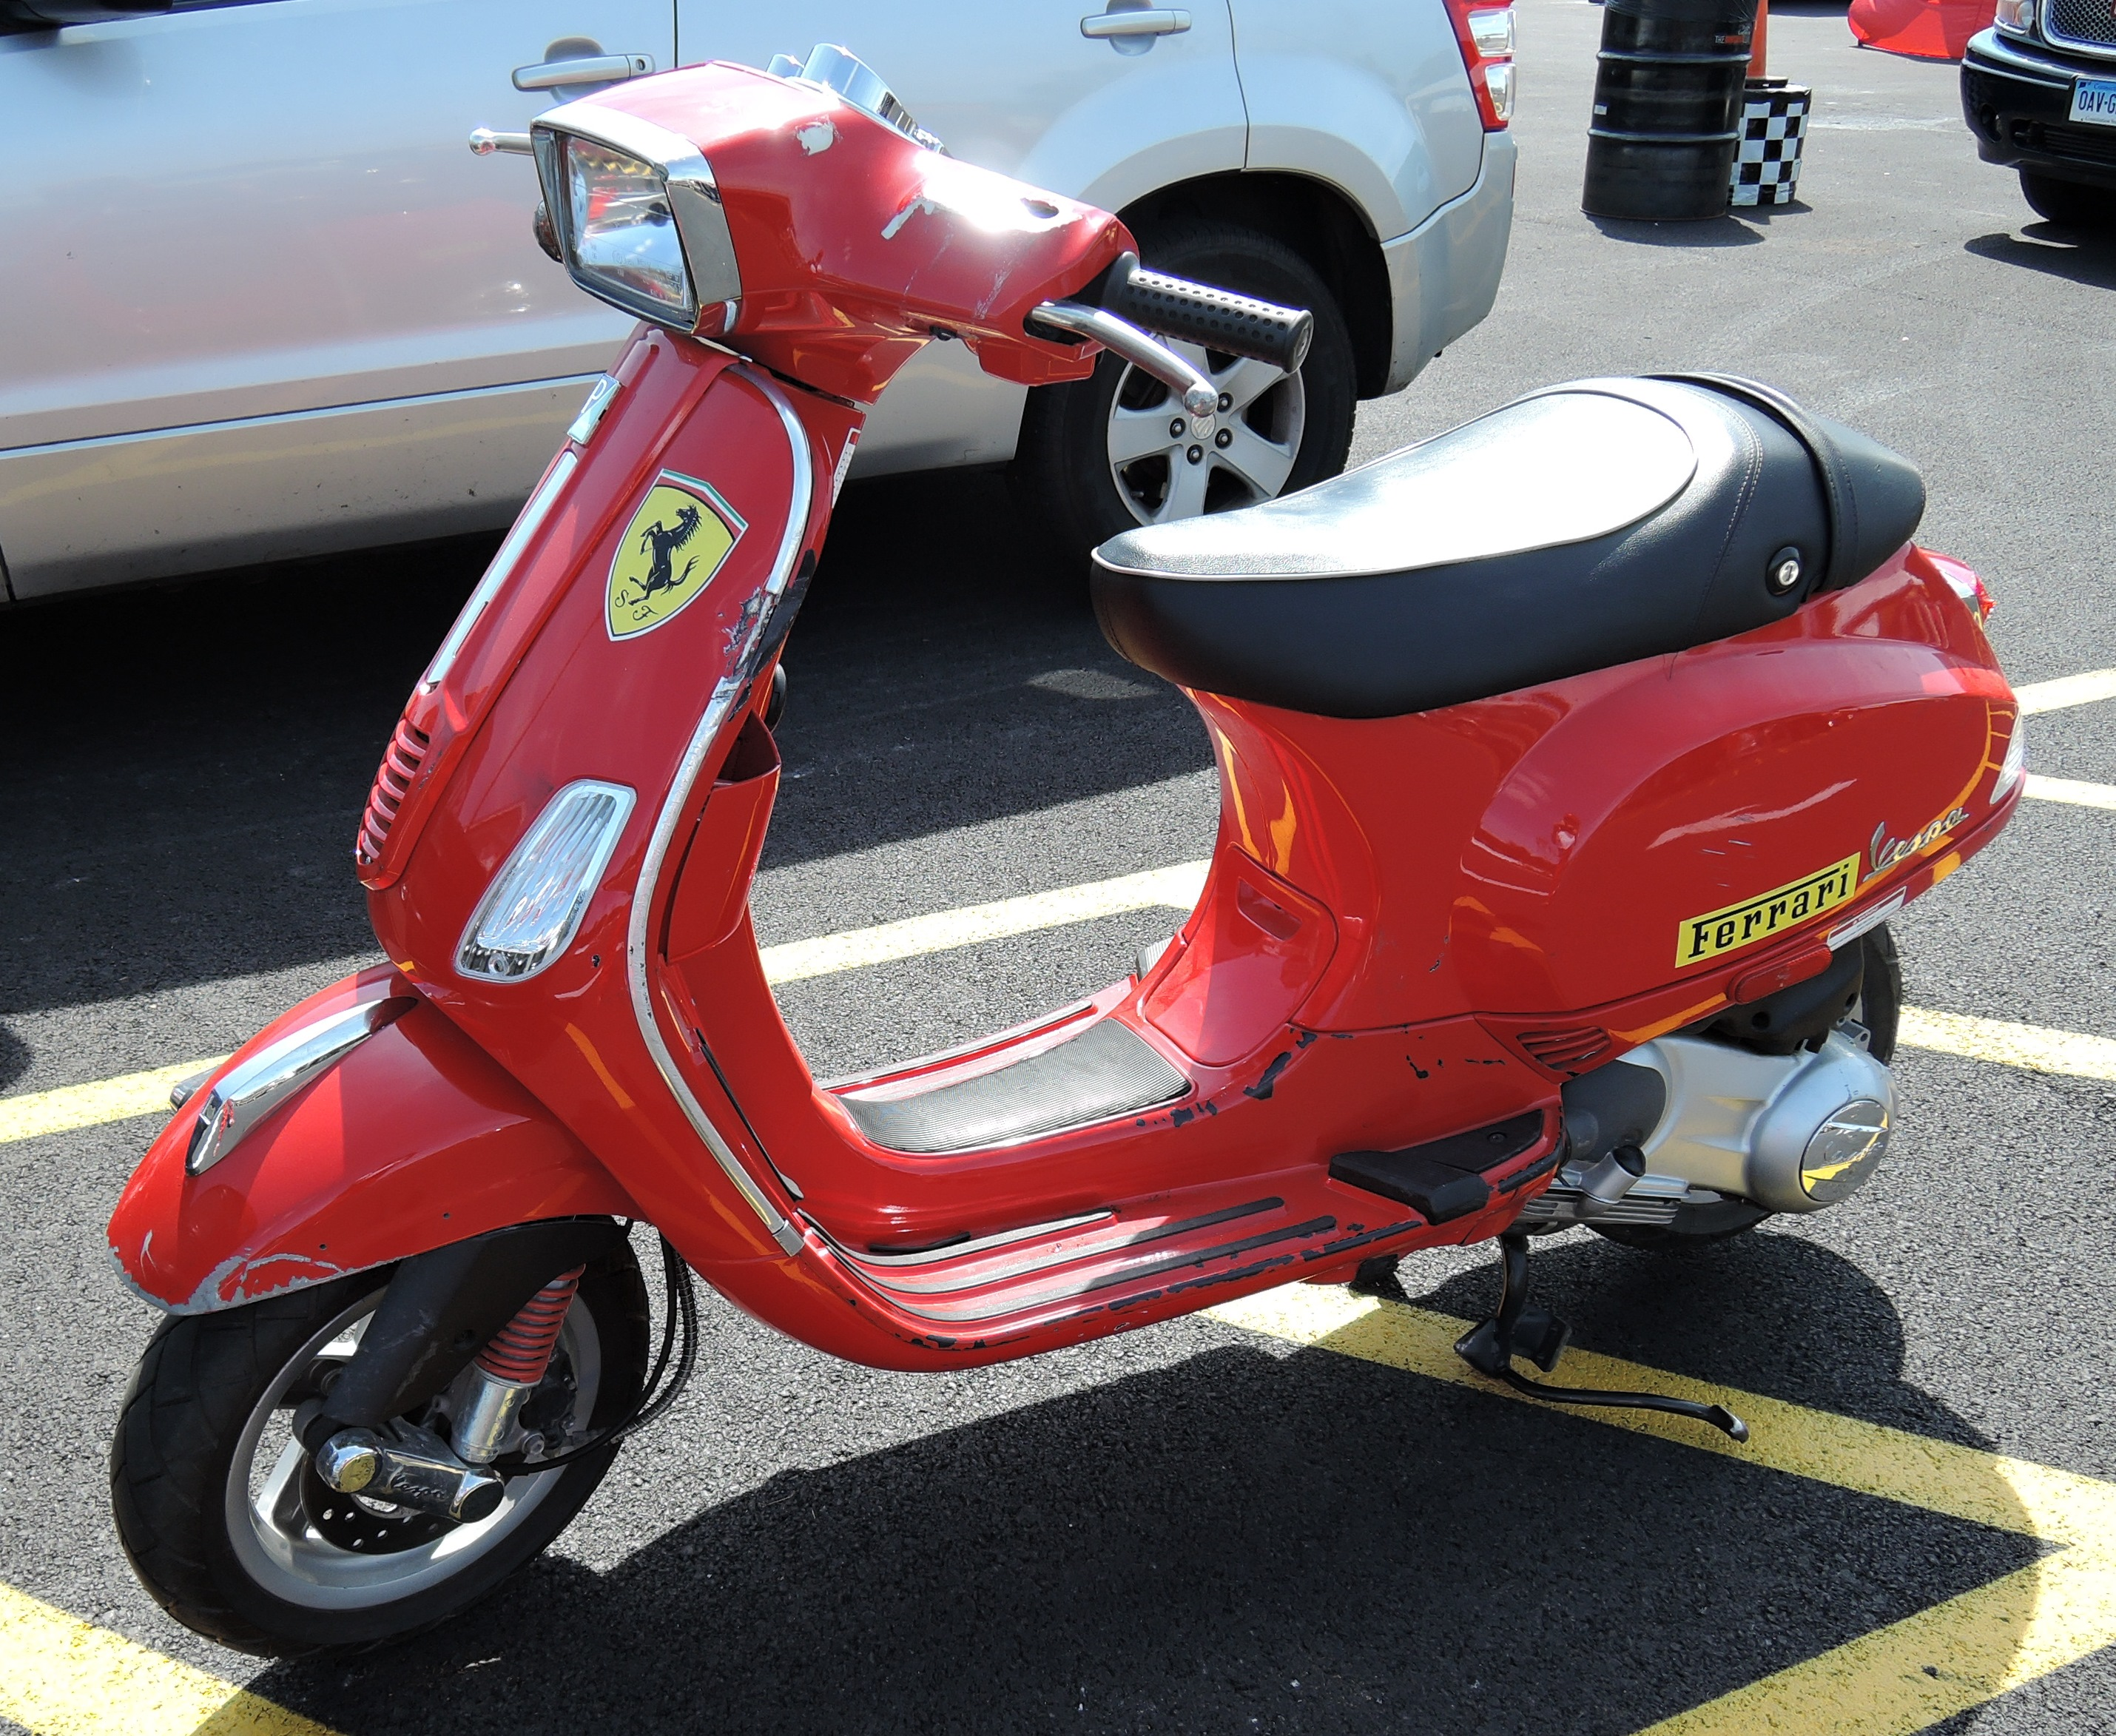 red ferrari scooter - lime rock park